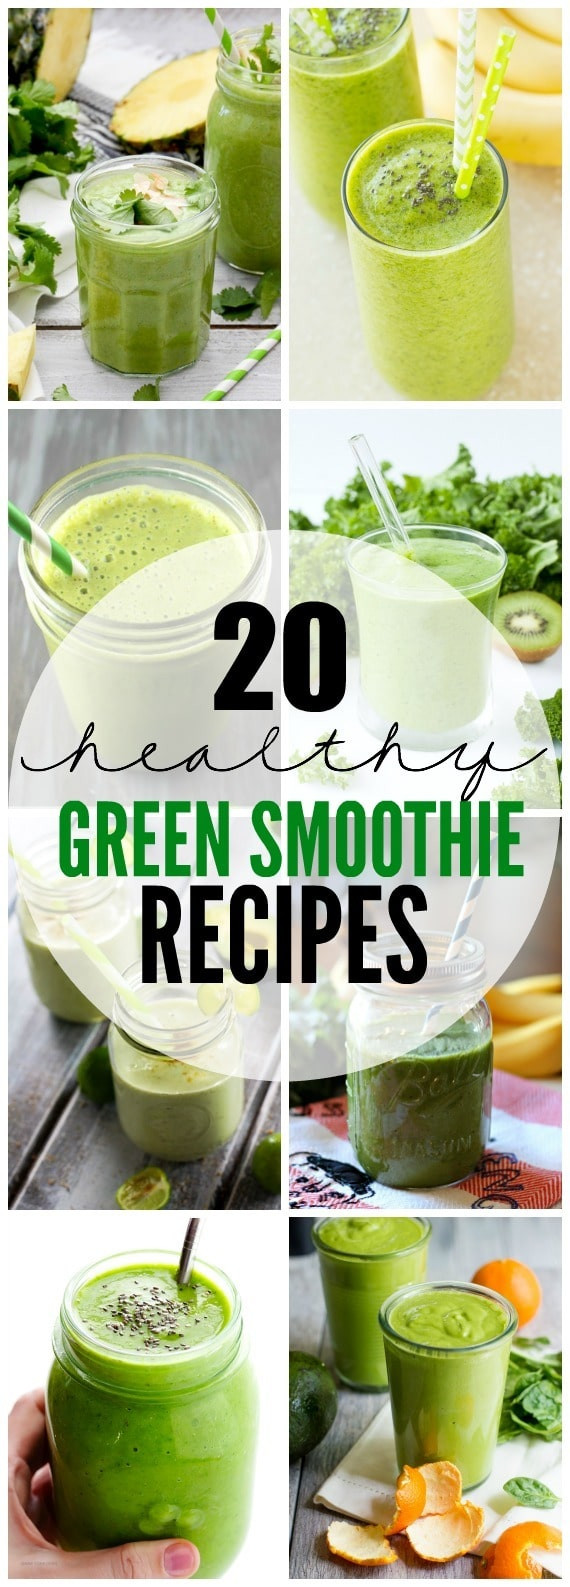 Green Healthy Smoothies  20 Healthy Green Smoothie Recipes Yummy Healthy Easy